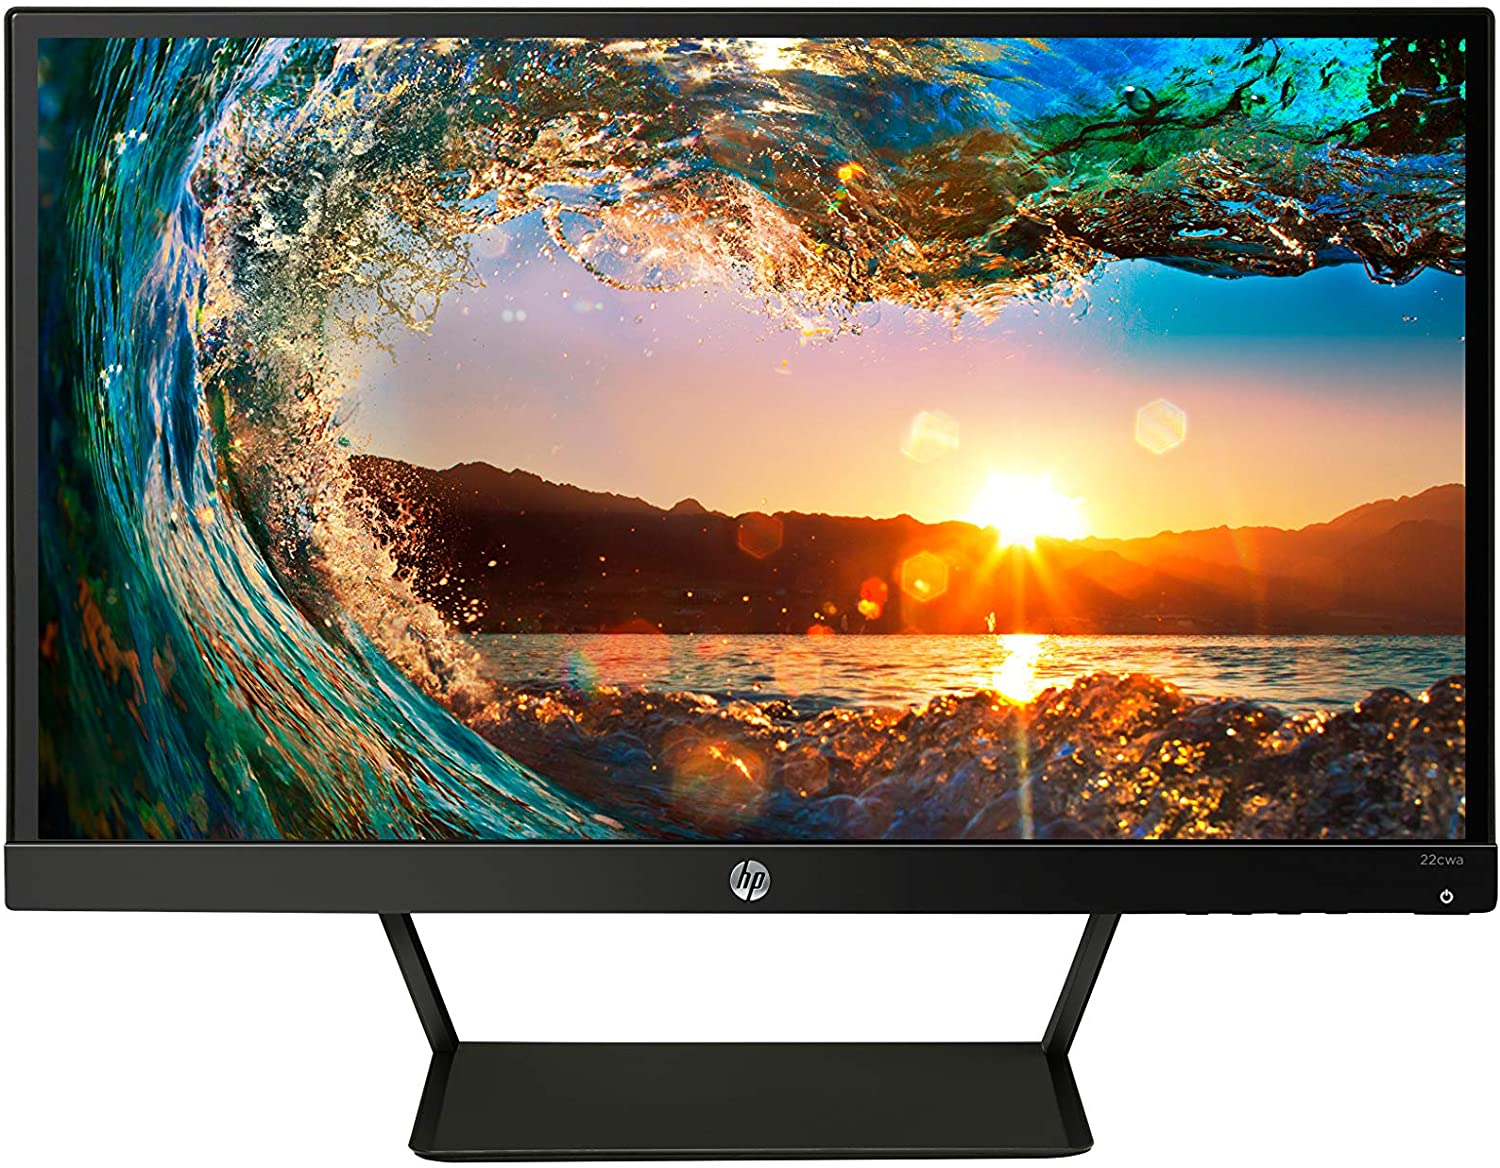 HP Pavilion 22cwa 21.5-Inch IPS Led Backlit Monitor Review